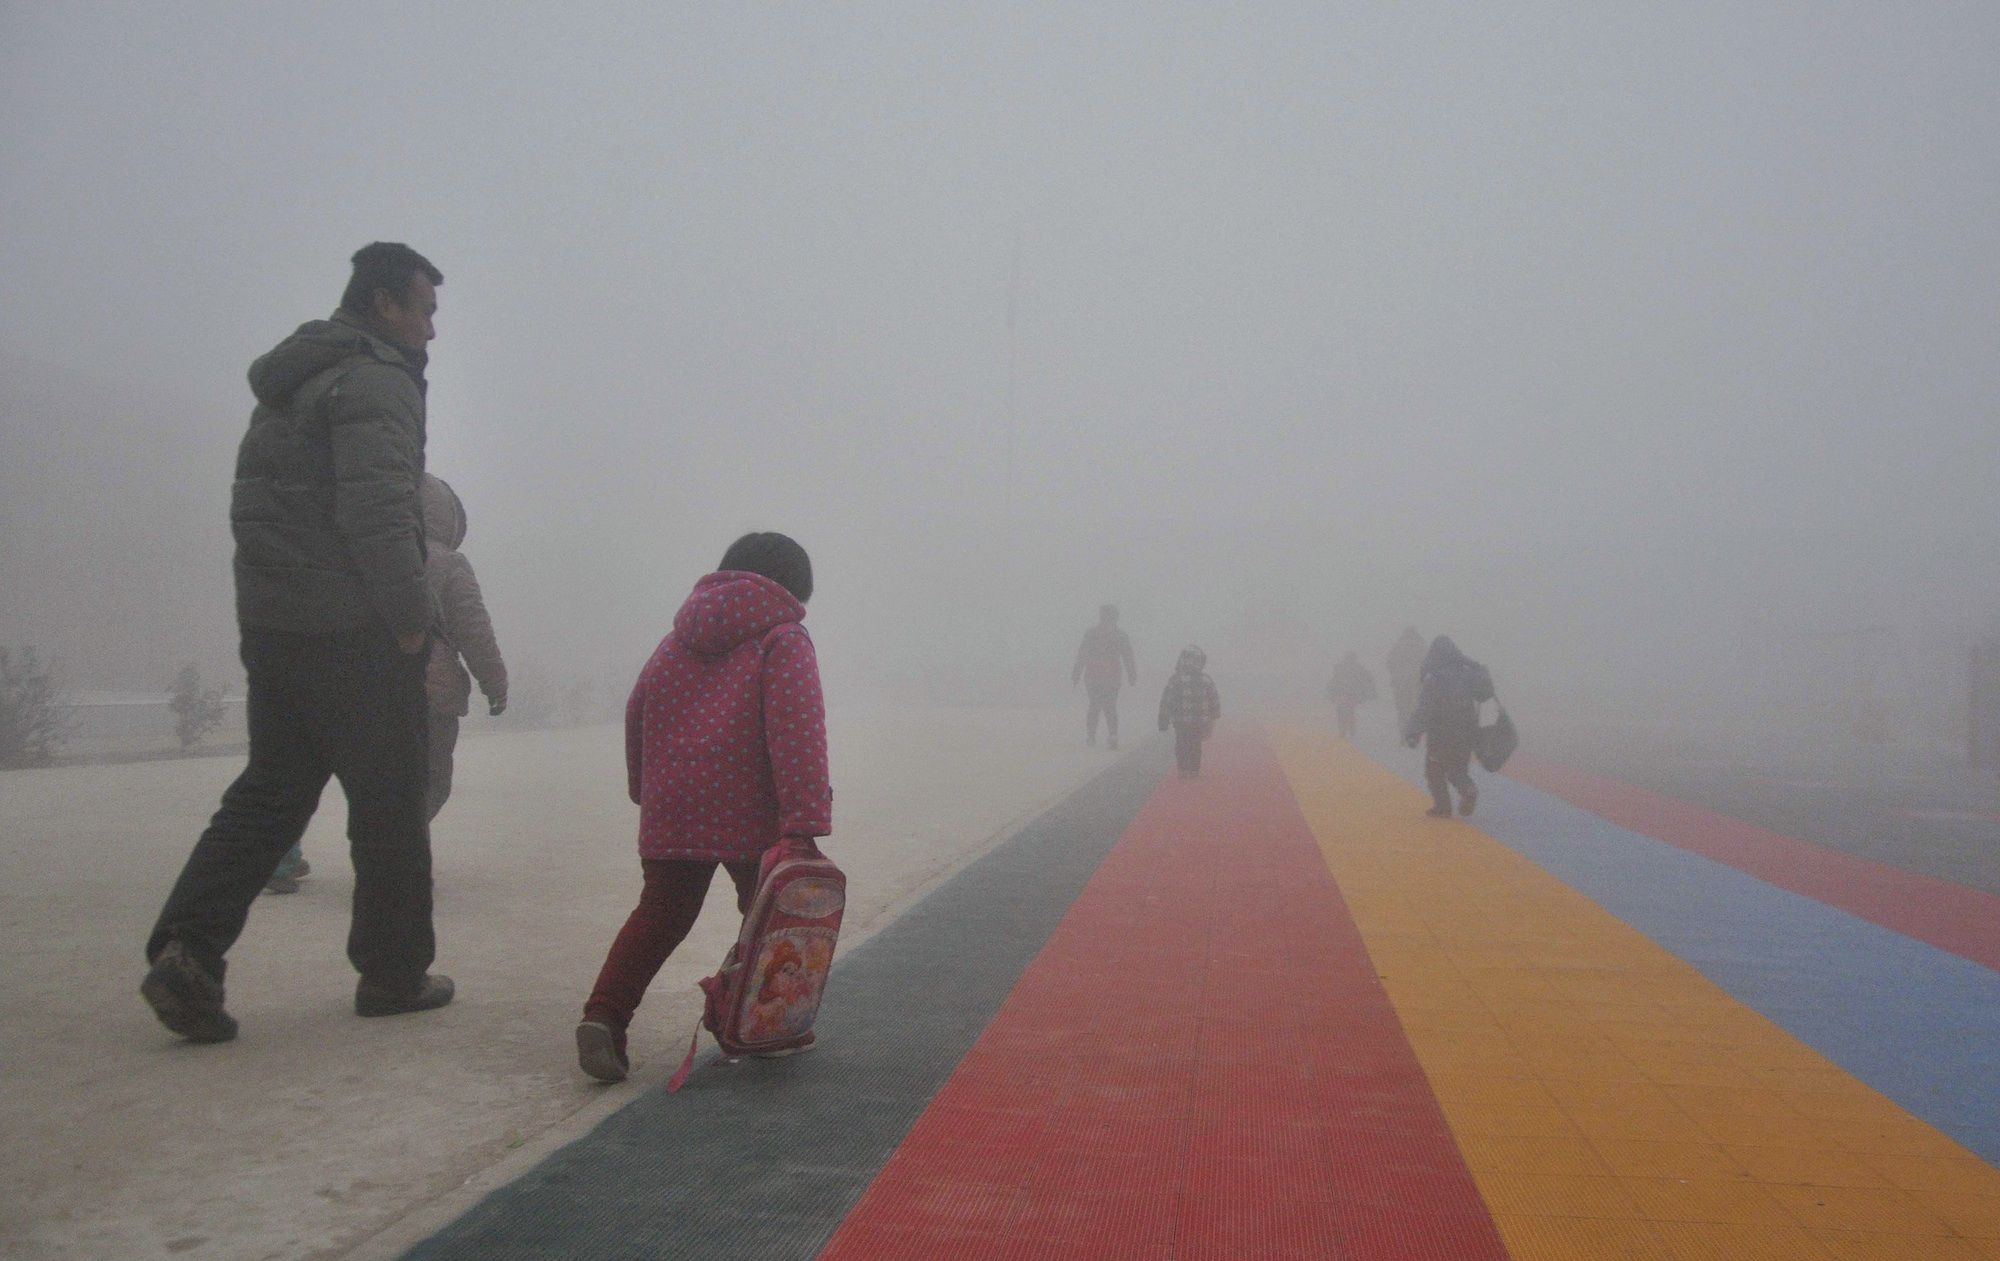 Parents walk primary school students to school amid thick haze in Chiping county, Shandong province